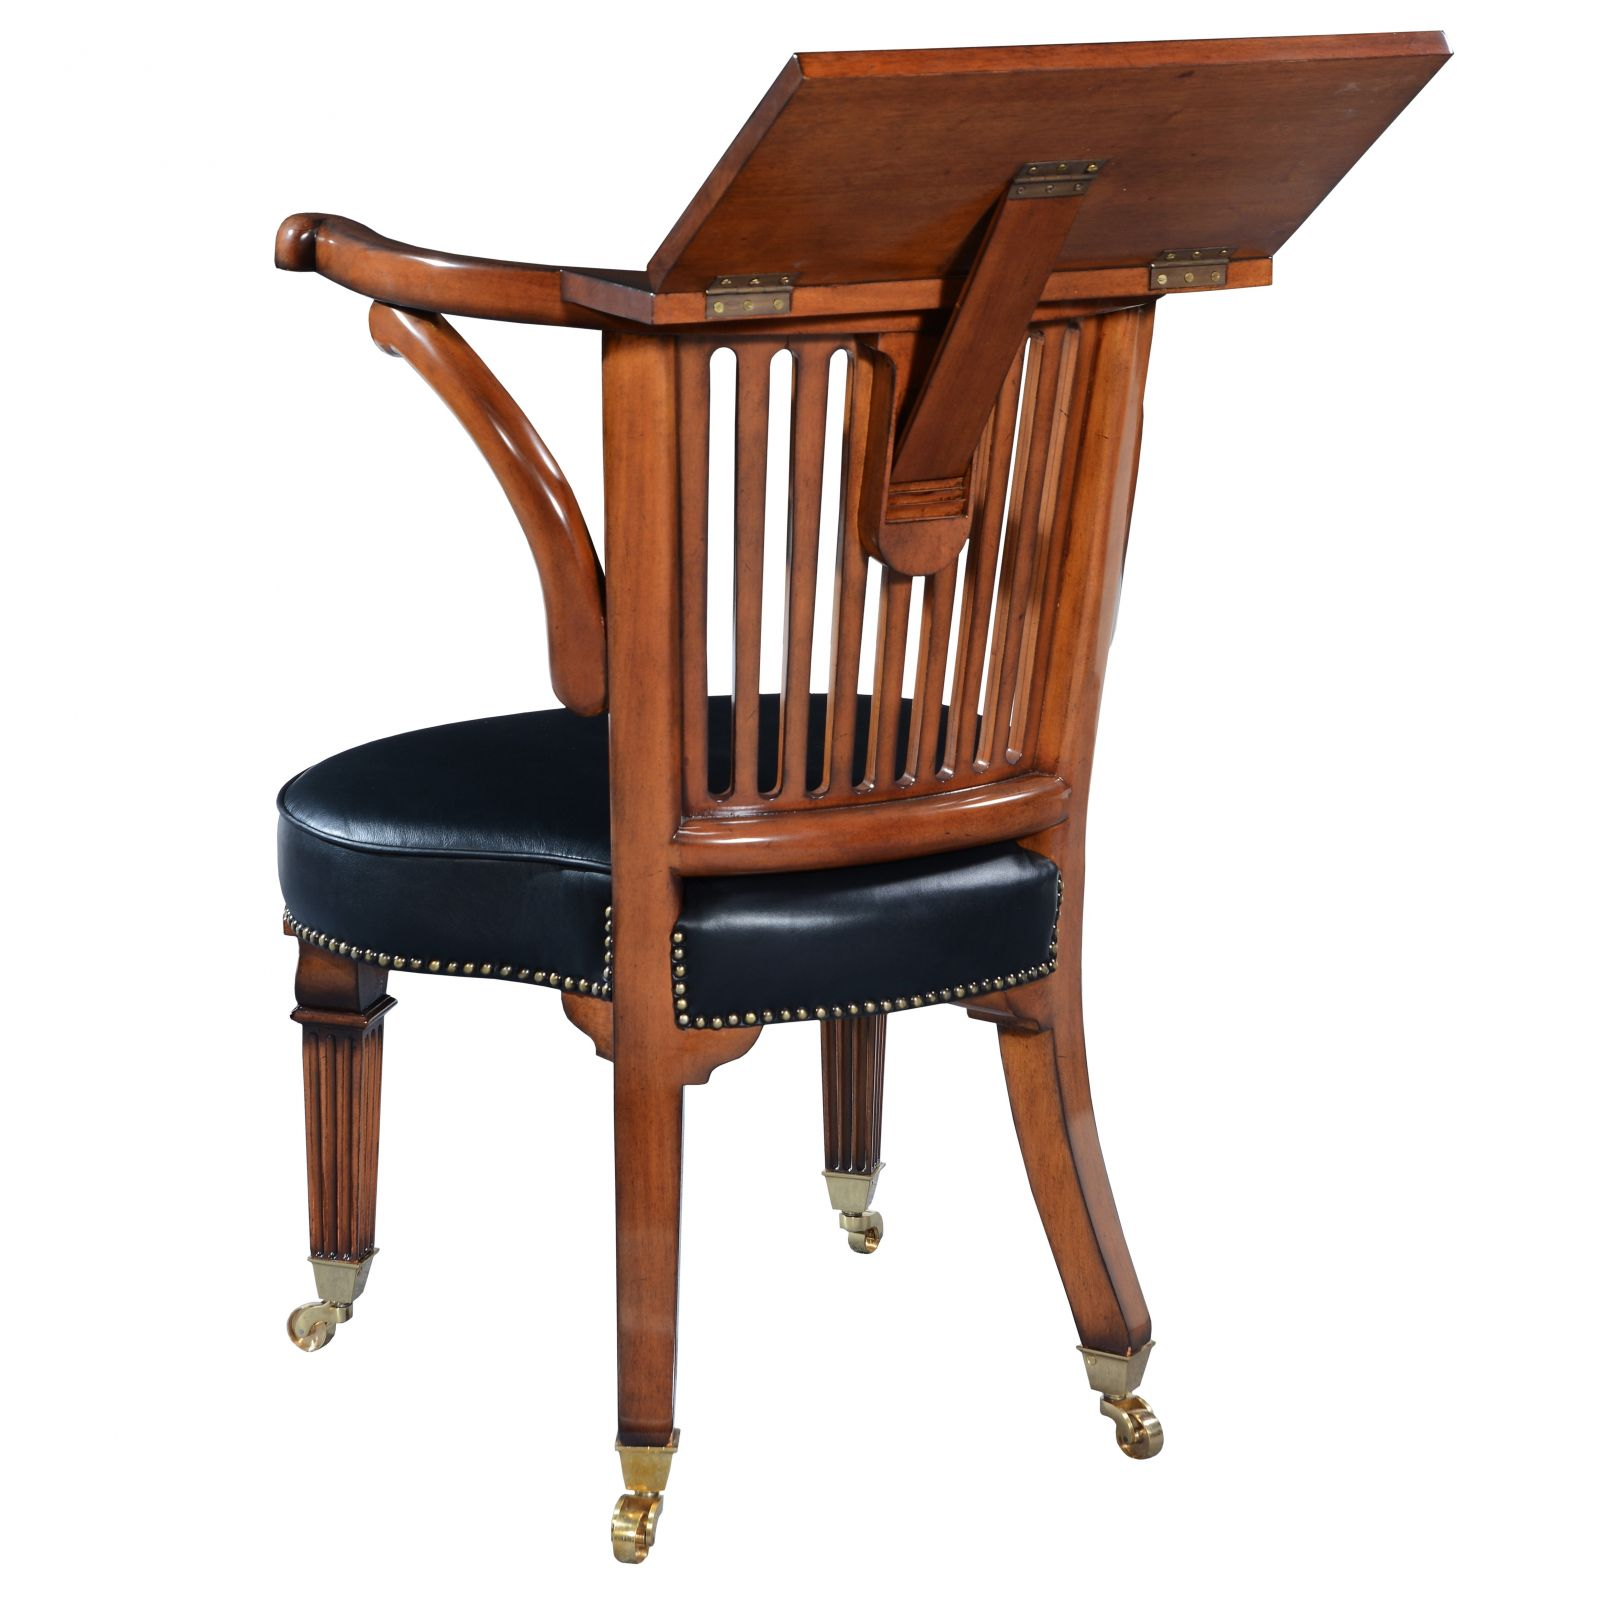 18th Century style mahogany reading chair